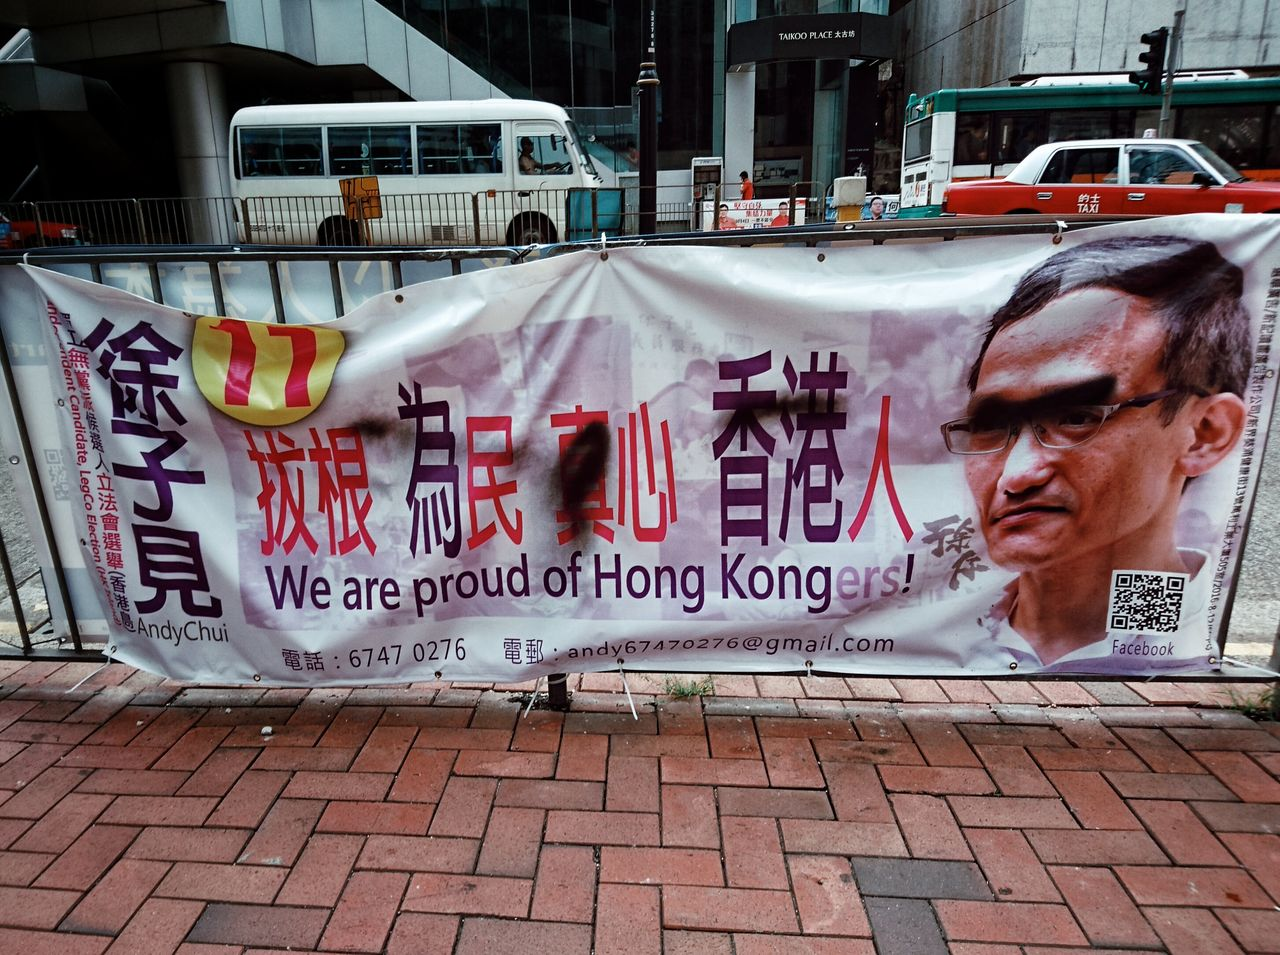 選舉-抹黑 2016, September 4 is the election day of hong kong legislative council, this candidate's campaign banner is disgraced by the competitors' supporter(s). Documentary Election Election Day City Life City Street Streetphotography Dailylife Snapshots Of Life Streetphoto_color Dailyphoto Street Photography Street Life XperiaZ5 AMPt AMPt_community Streetphoto Election Campaign Eye4photography  NEM Street Urban Exploration City Life